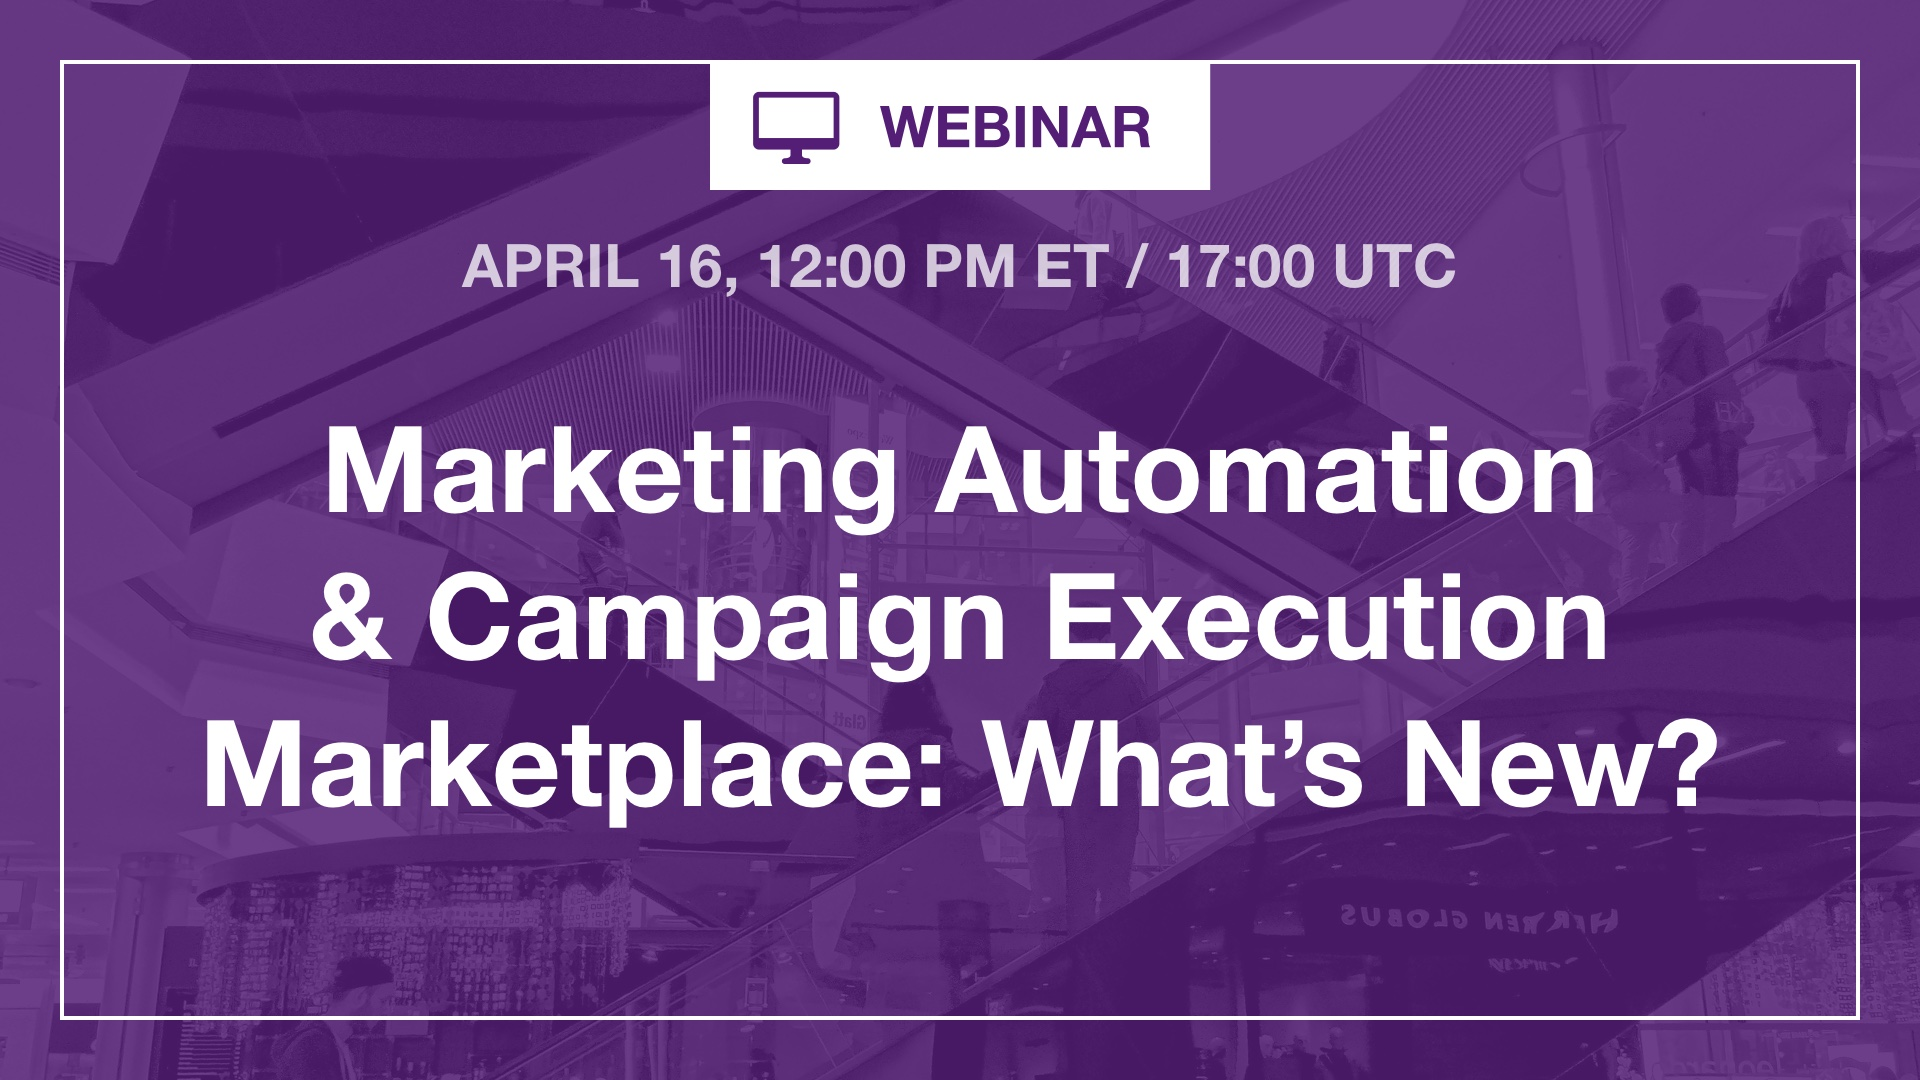 [Webinar] What's New in Marketing Automation & Campaign Execution Marketplace